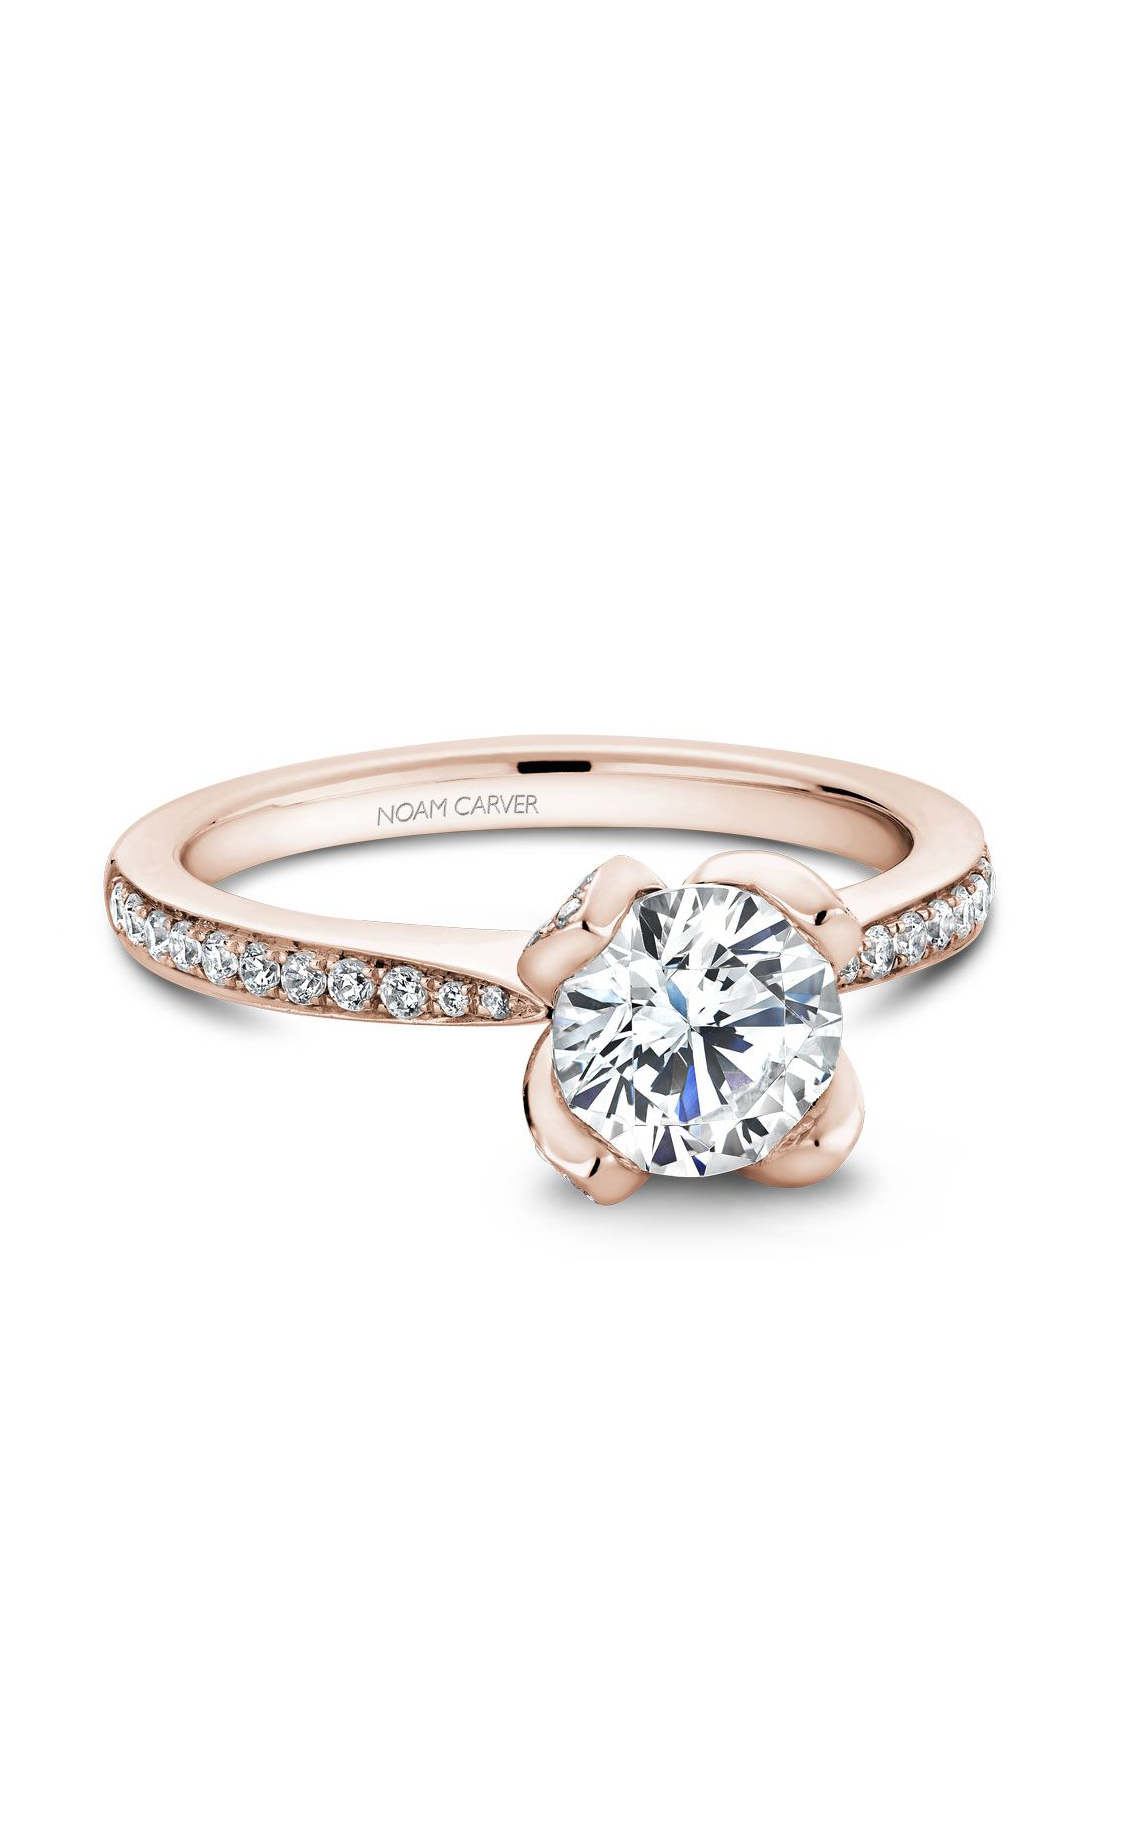 Noam Carver Floral Engagement Ring B019-01WM product image